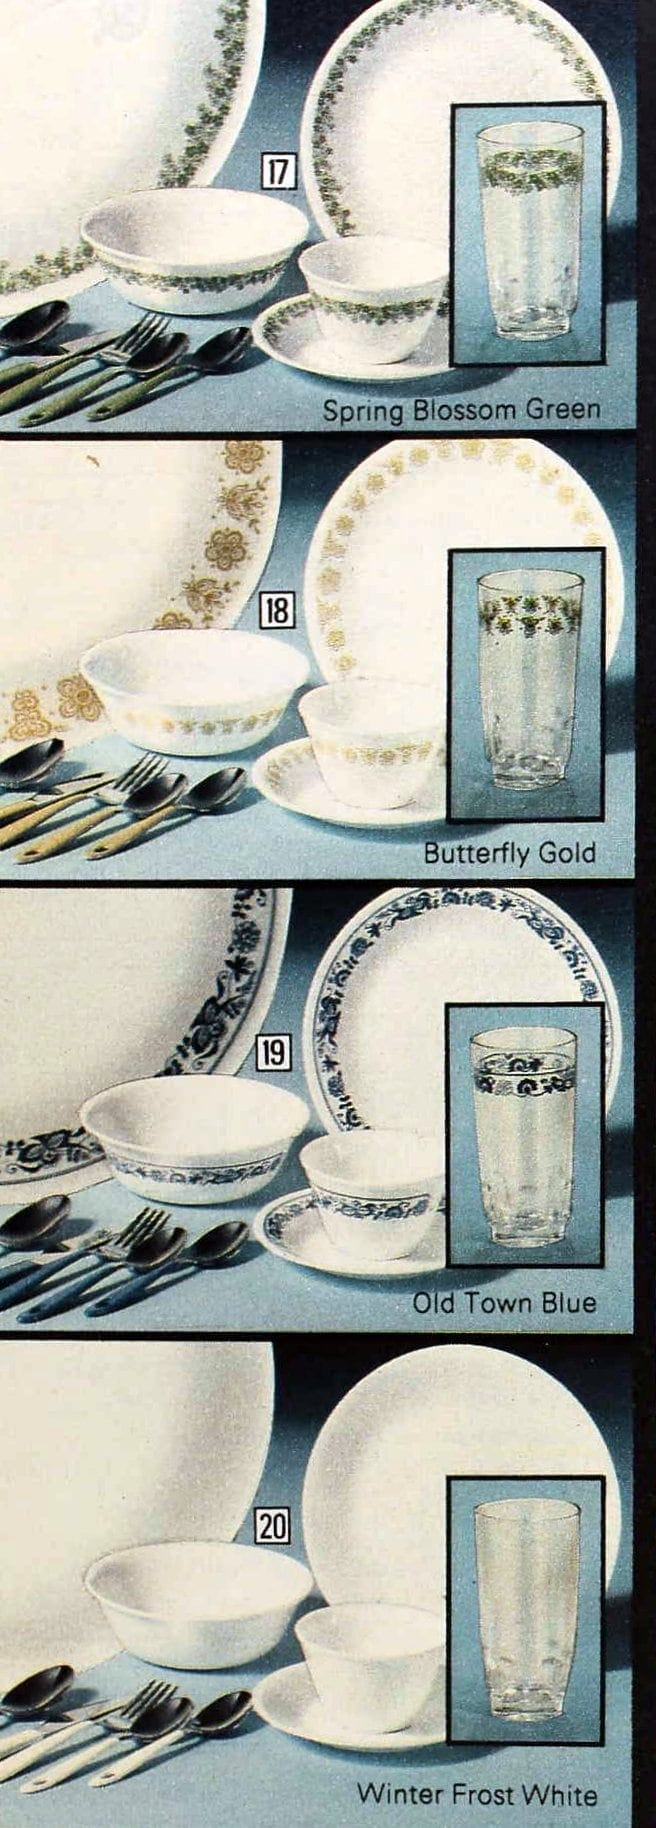 Corelle dish patterns from the seventies